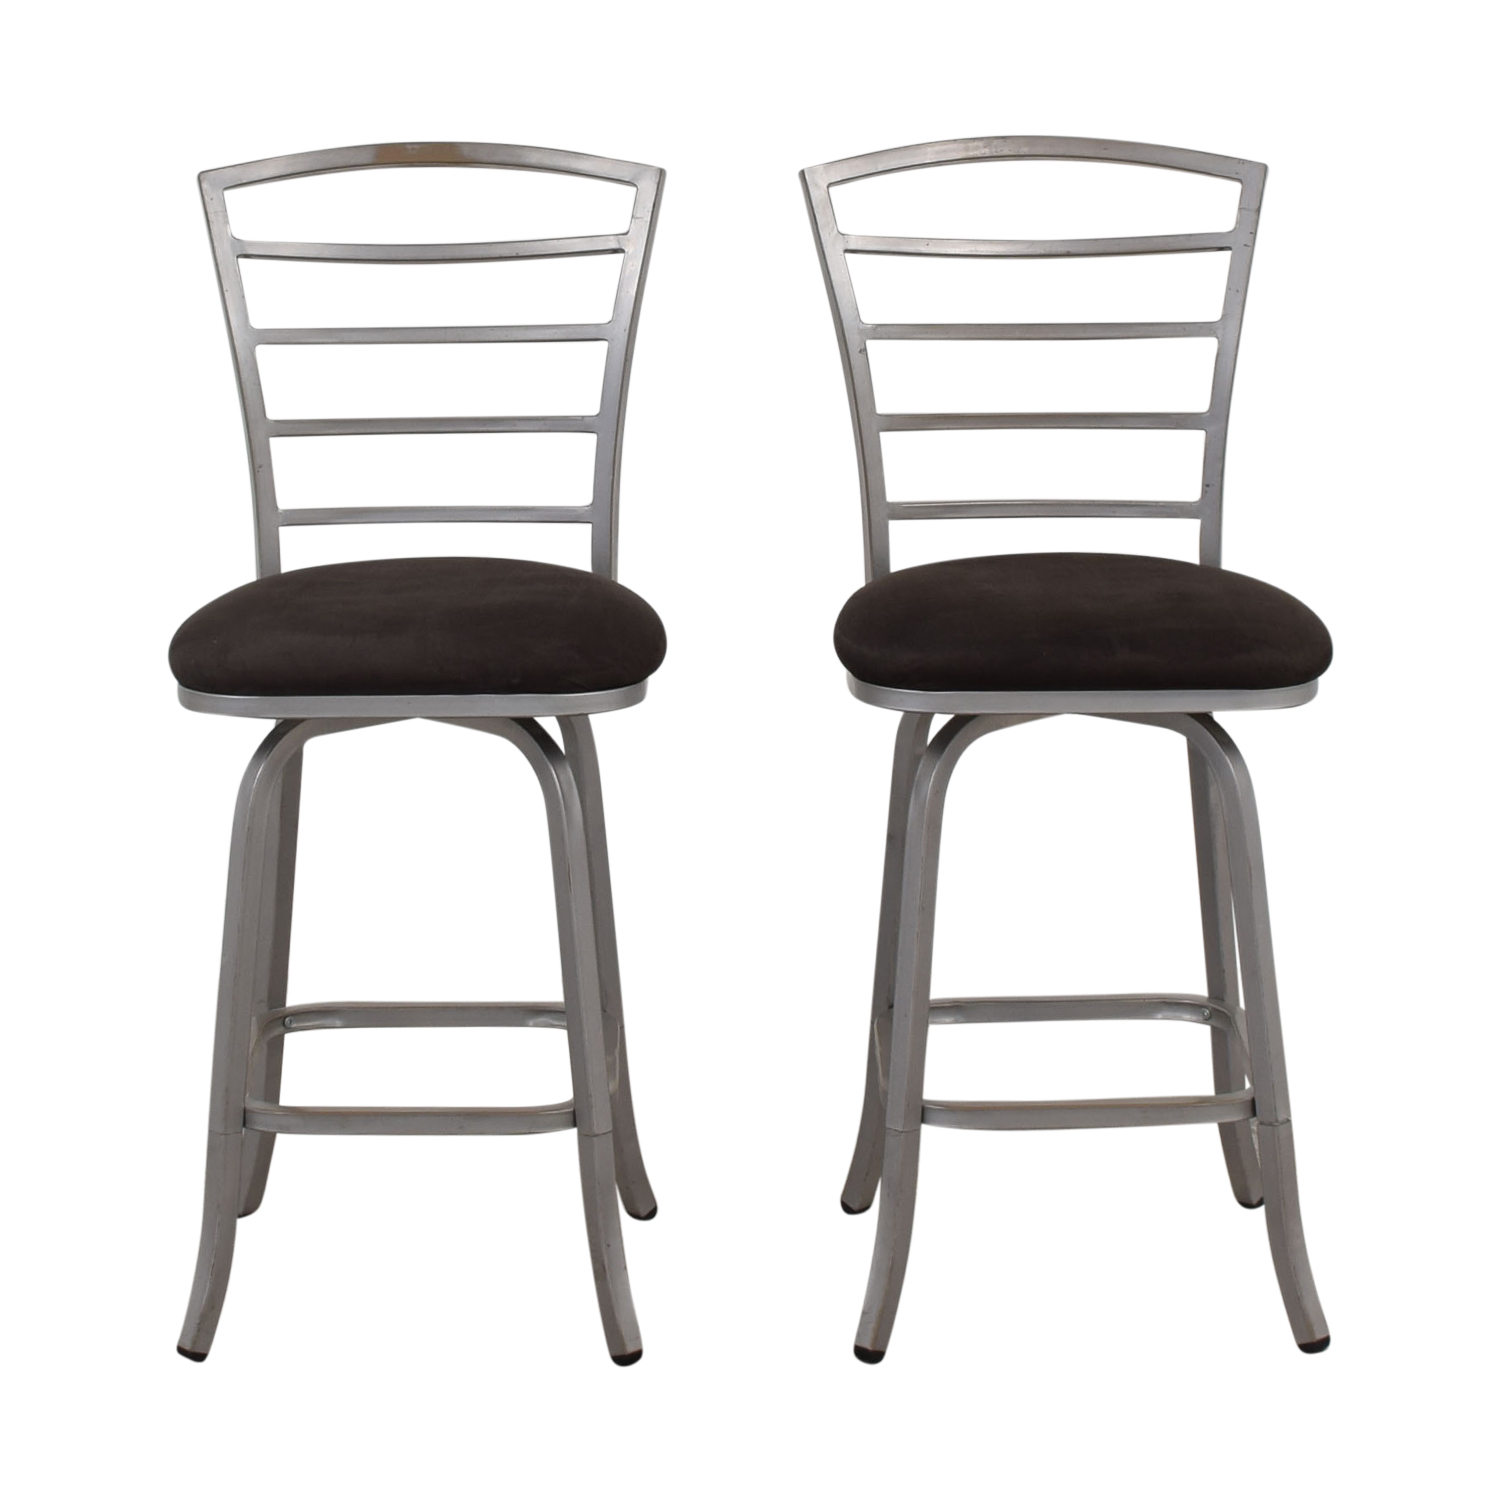 Crate & Barrel Crate & Barrel Bar Chairs nj